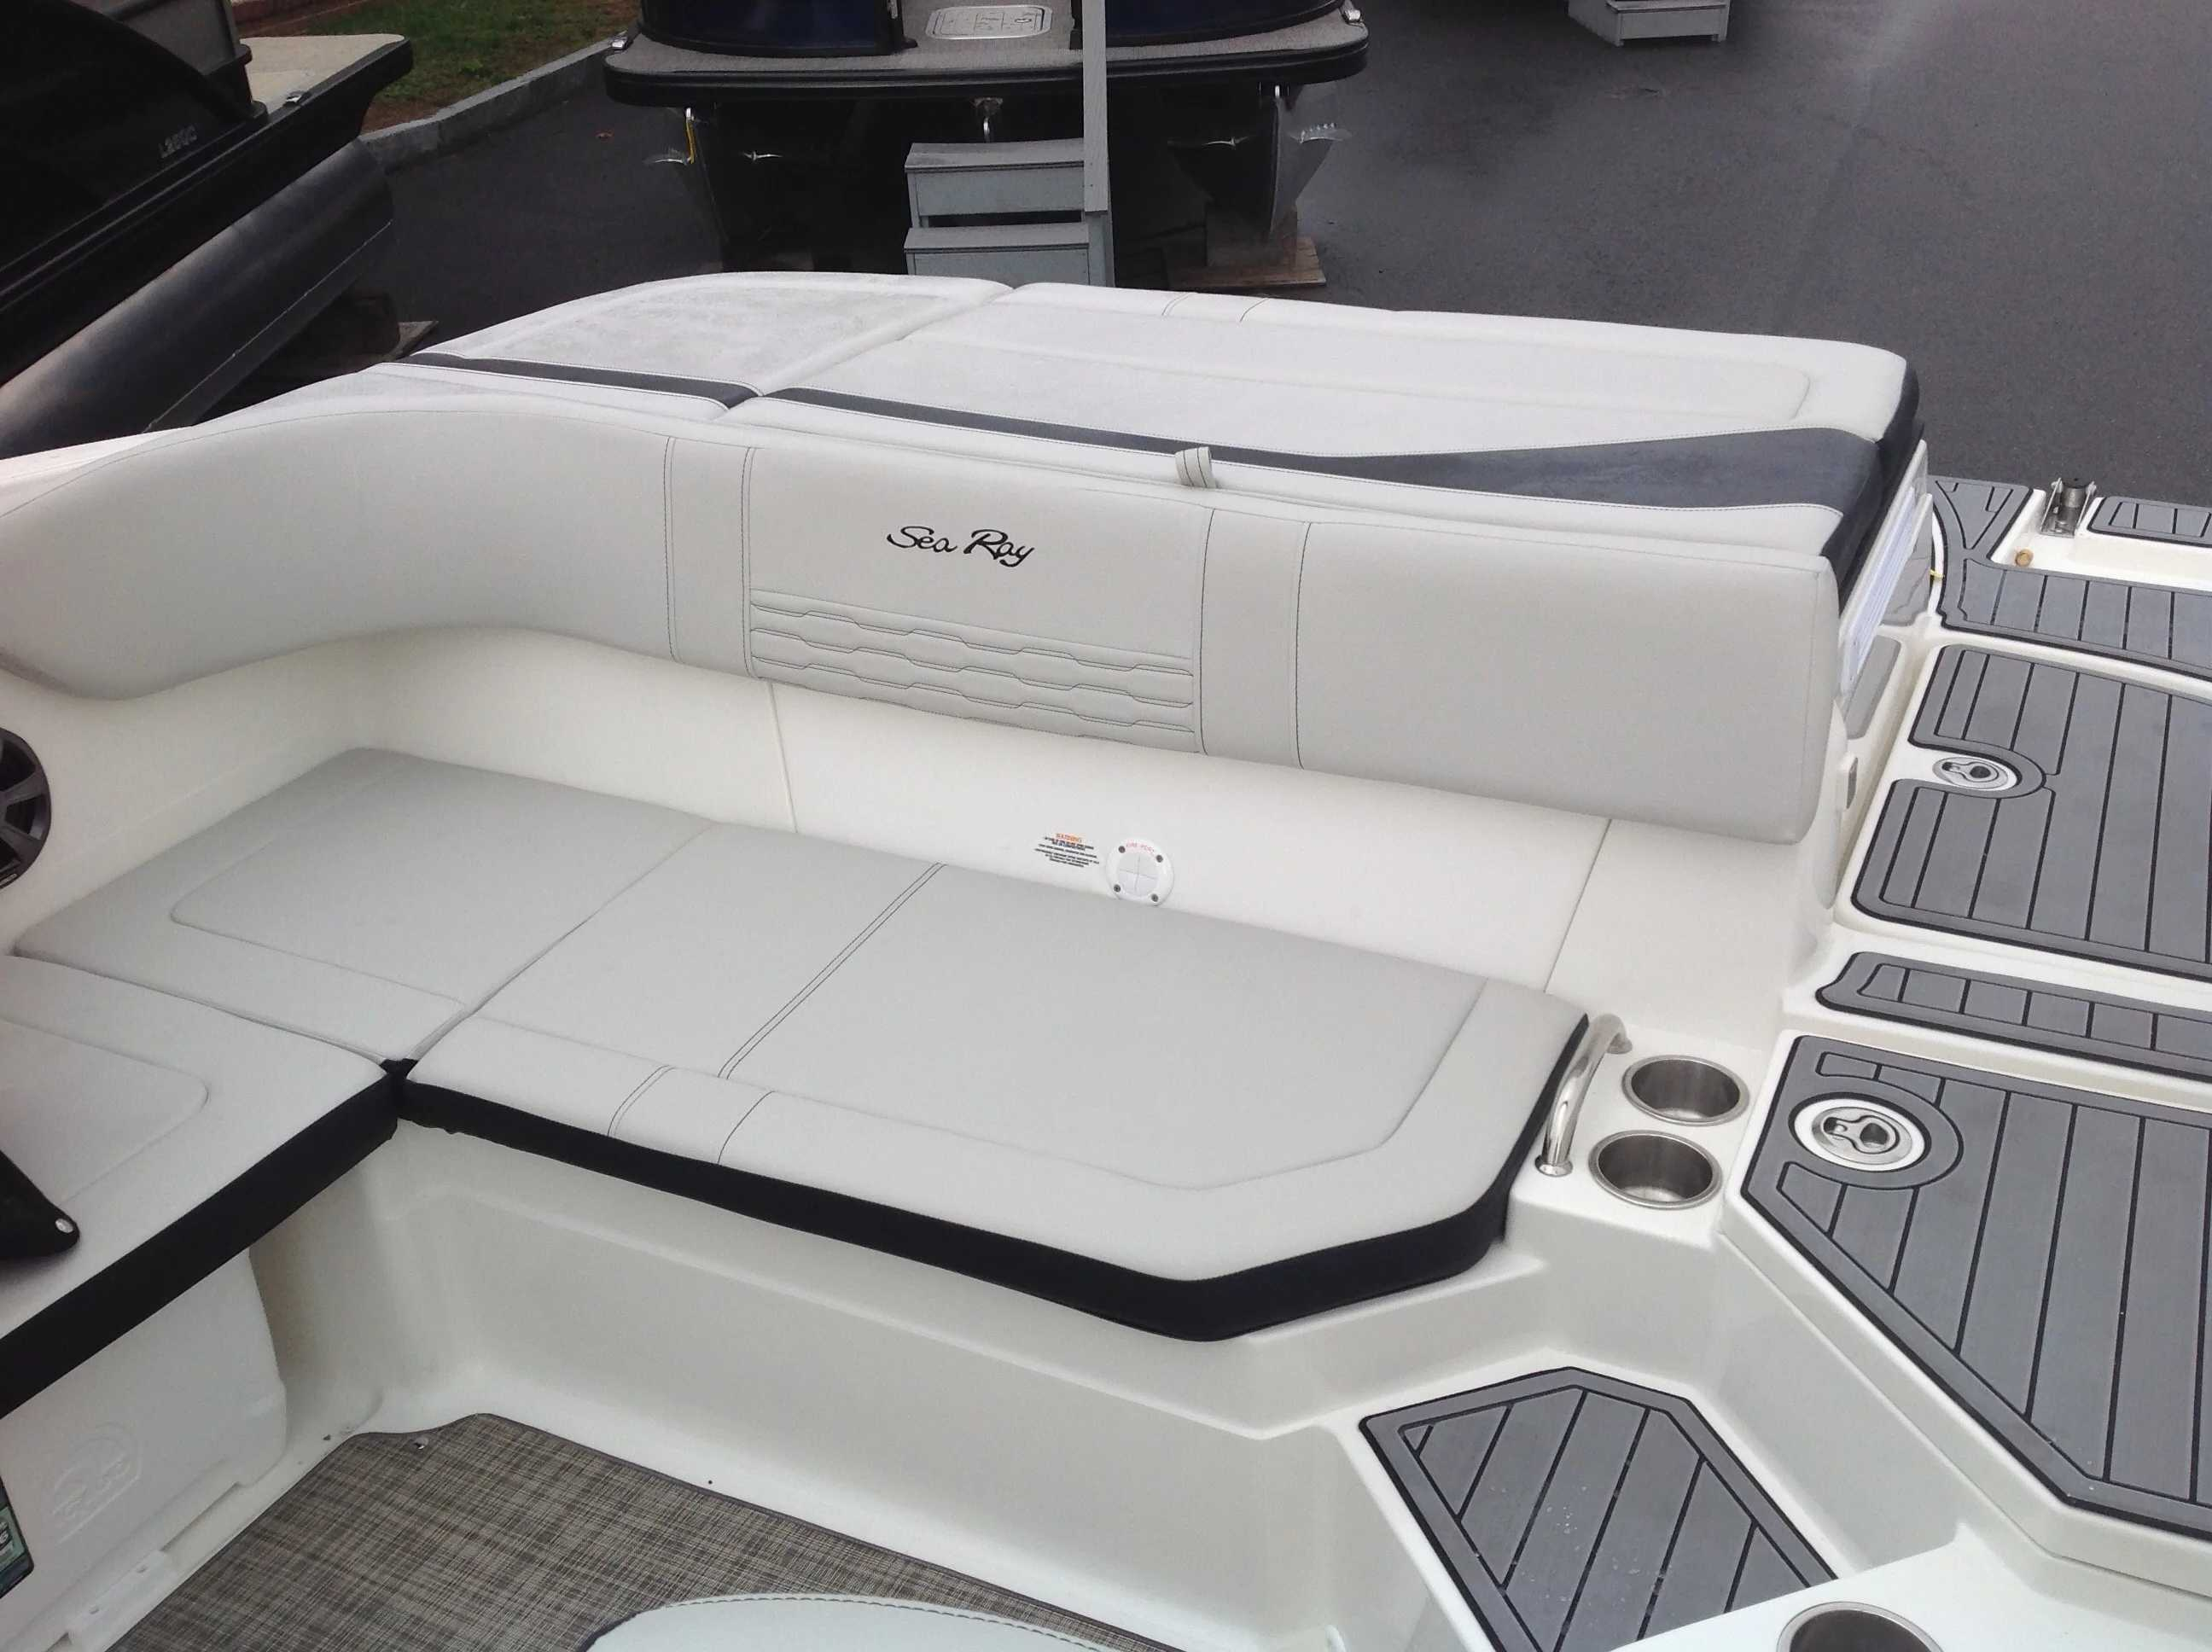 2022 Sea Ray boat for sale, model of the boat is 210spx & Image # 5 of 8